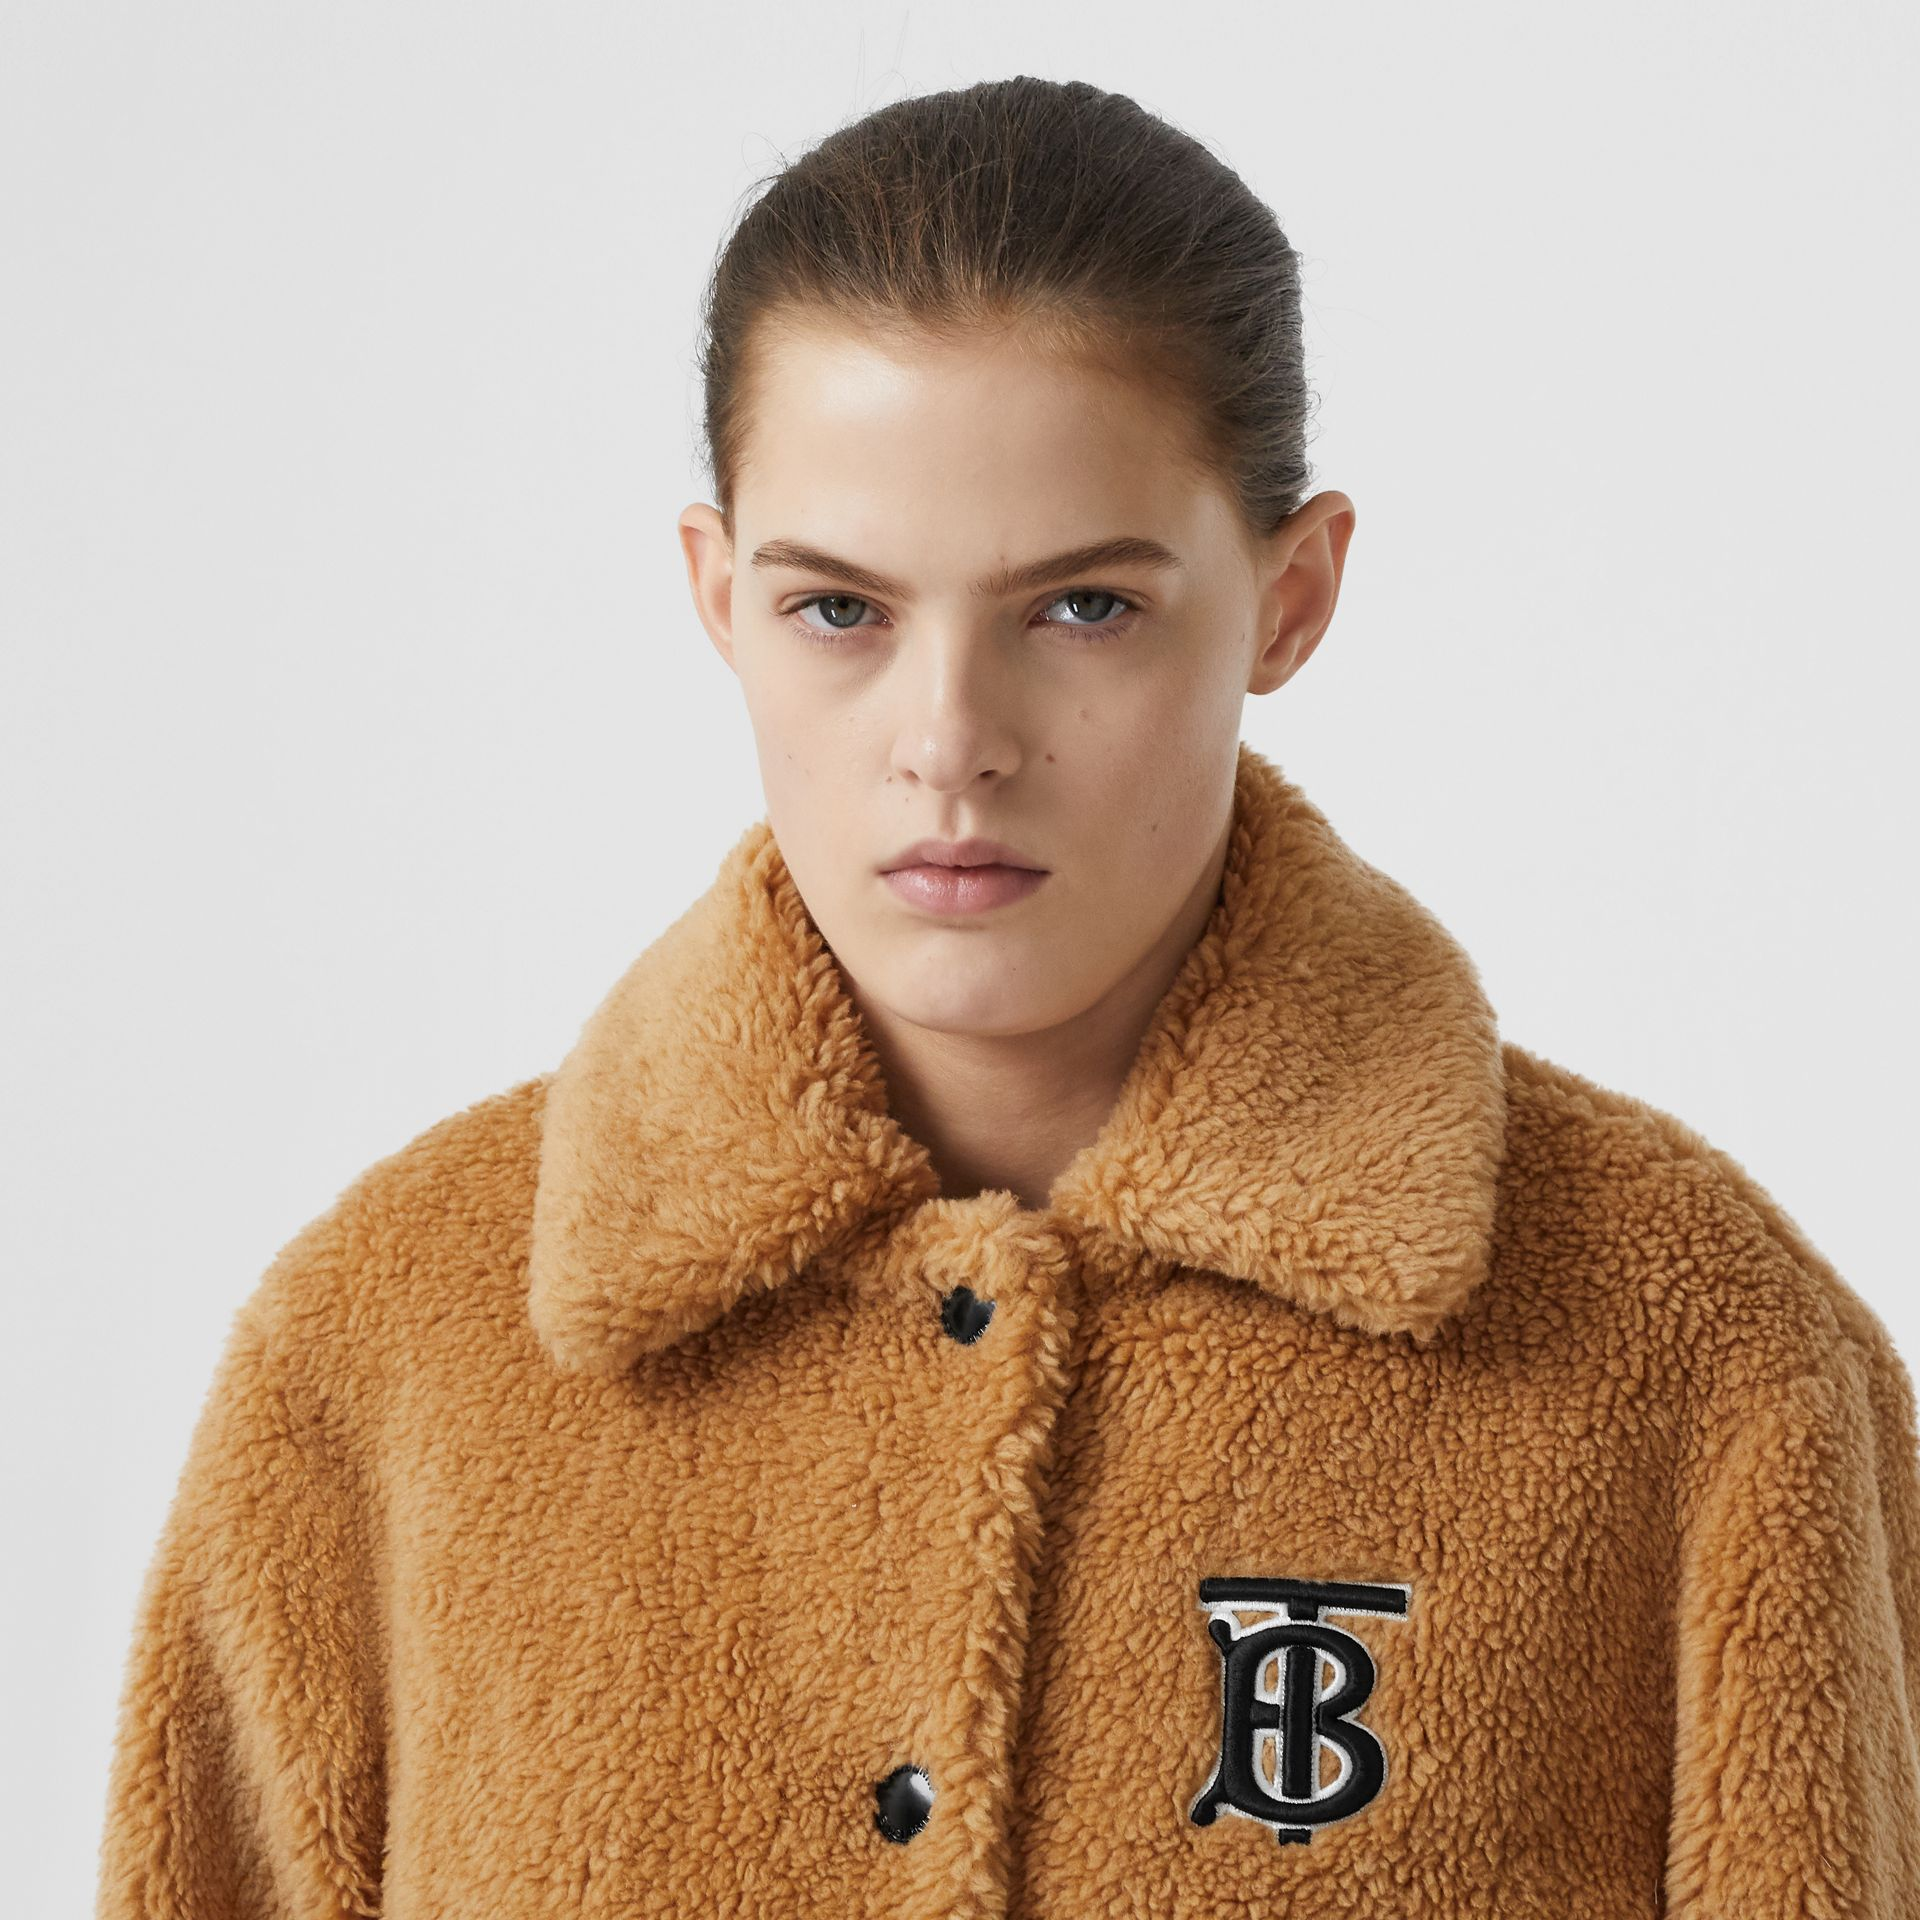 Monogram Motif Fleece Jacket in Camel - Women | Burberry Canada - gallery image 1